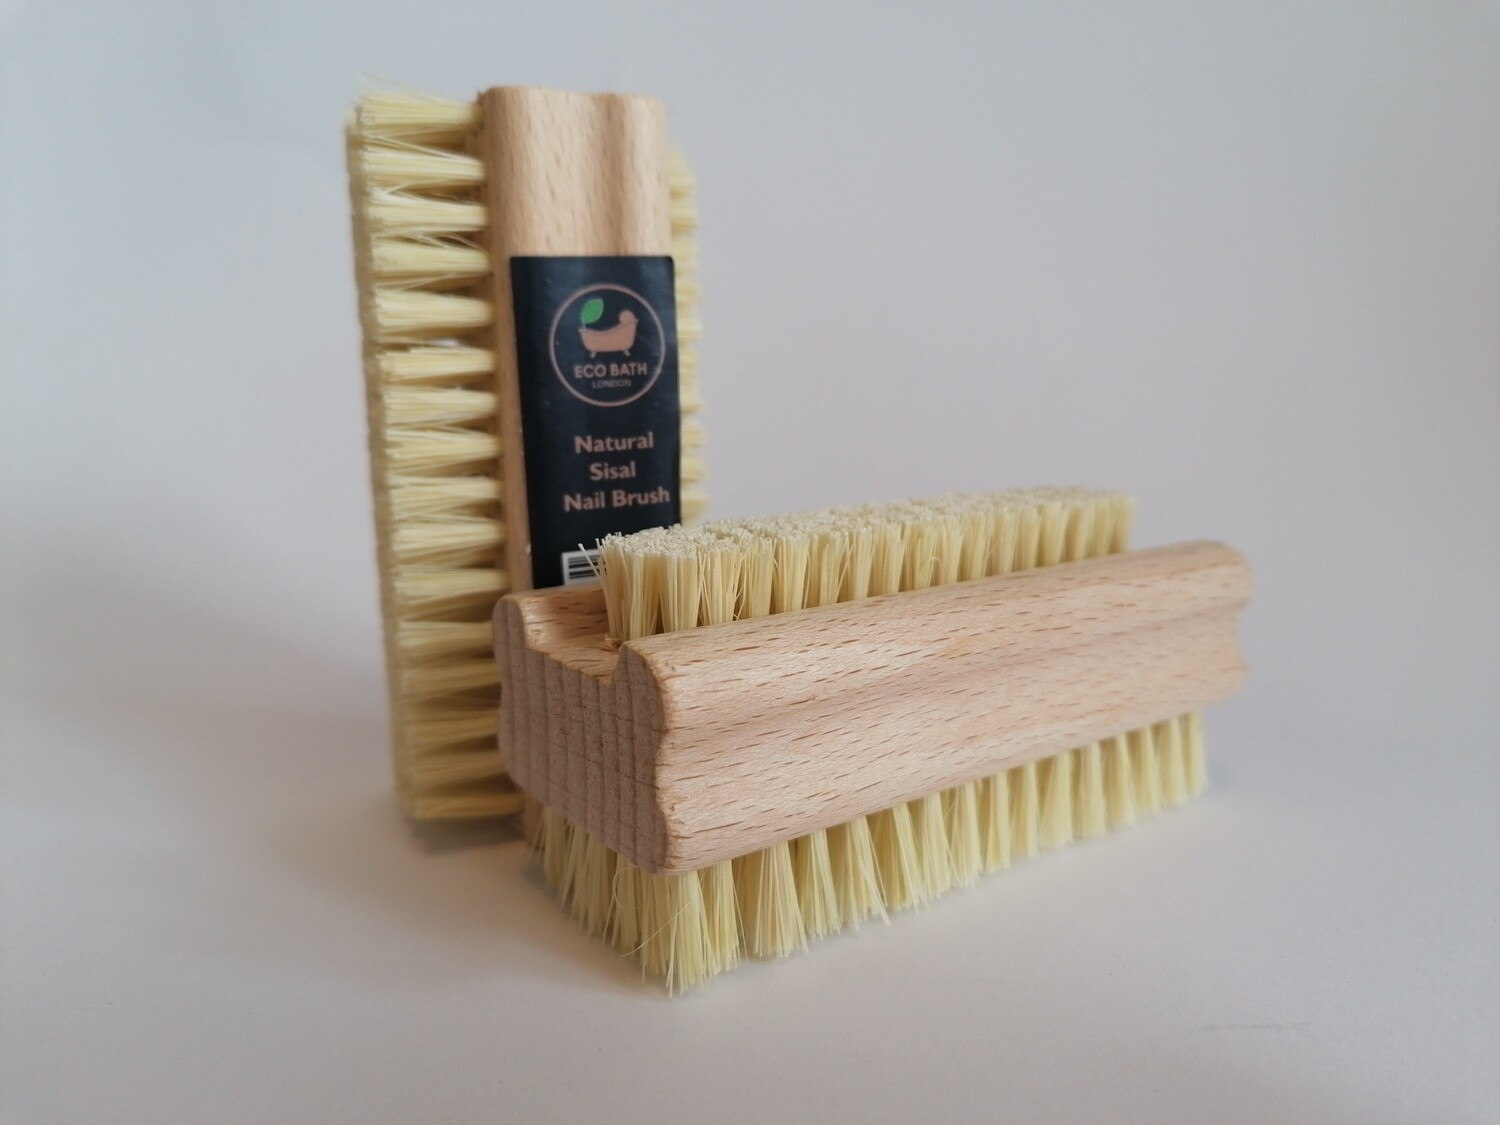 Eco Bath Natural Sisal Nail Brush